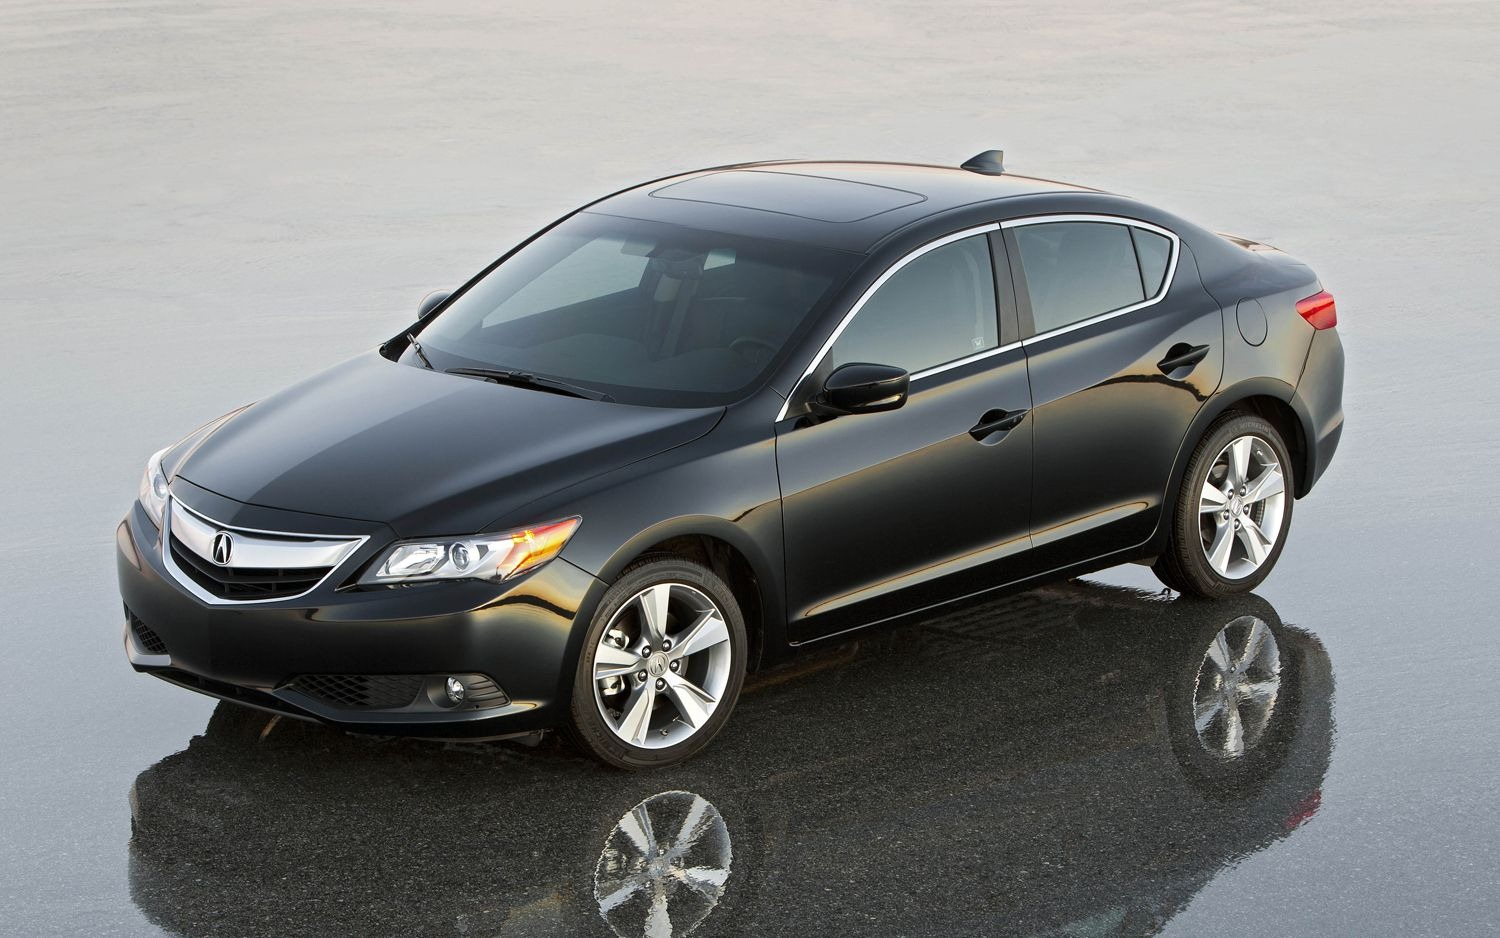 2013 Acura ILX Luxury Sedan Unveiled - autoevolution